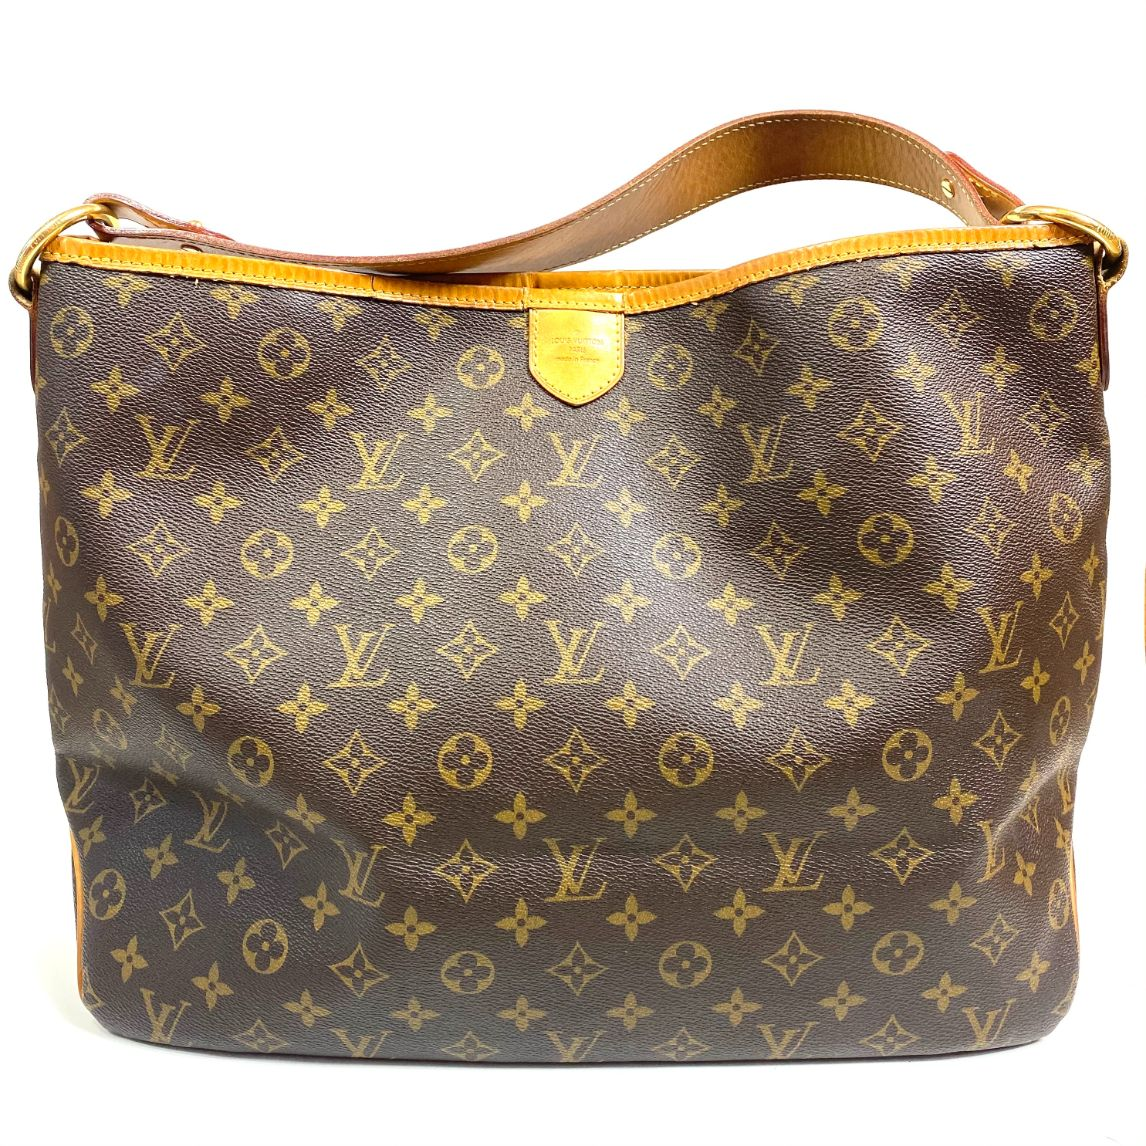 Bolsa Louis Vuitton Delightful MM Monograma